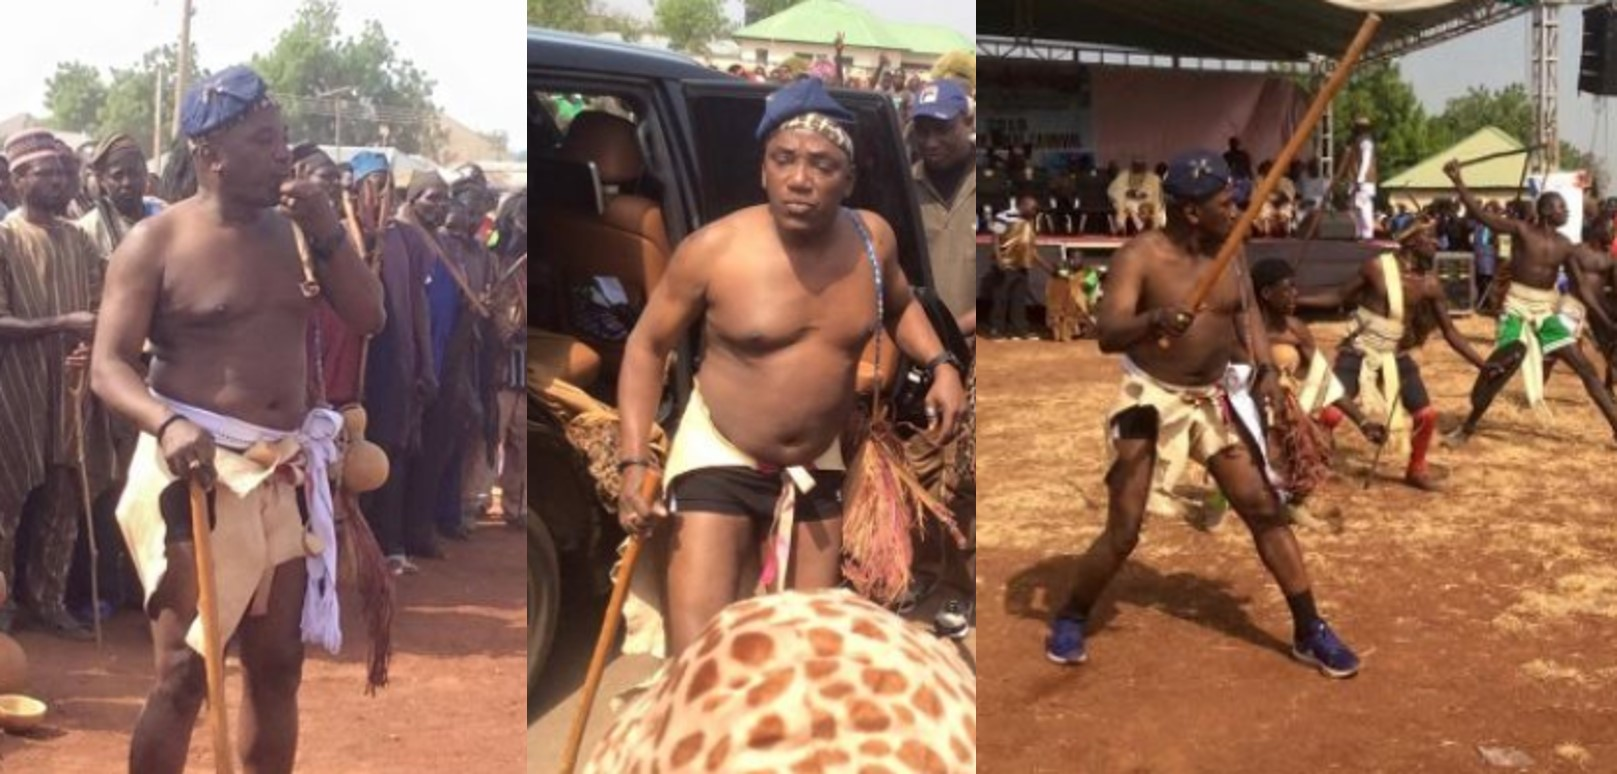 Minister of sports, Dalung steps out in style for a carnival (Photos)